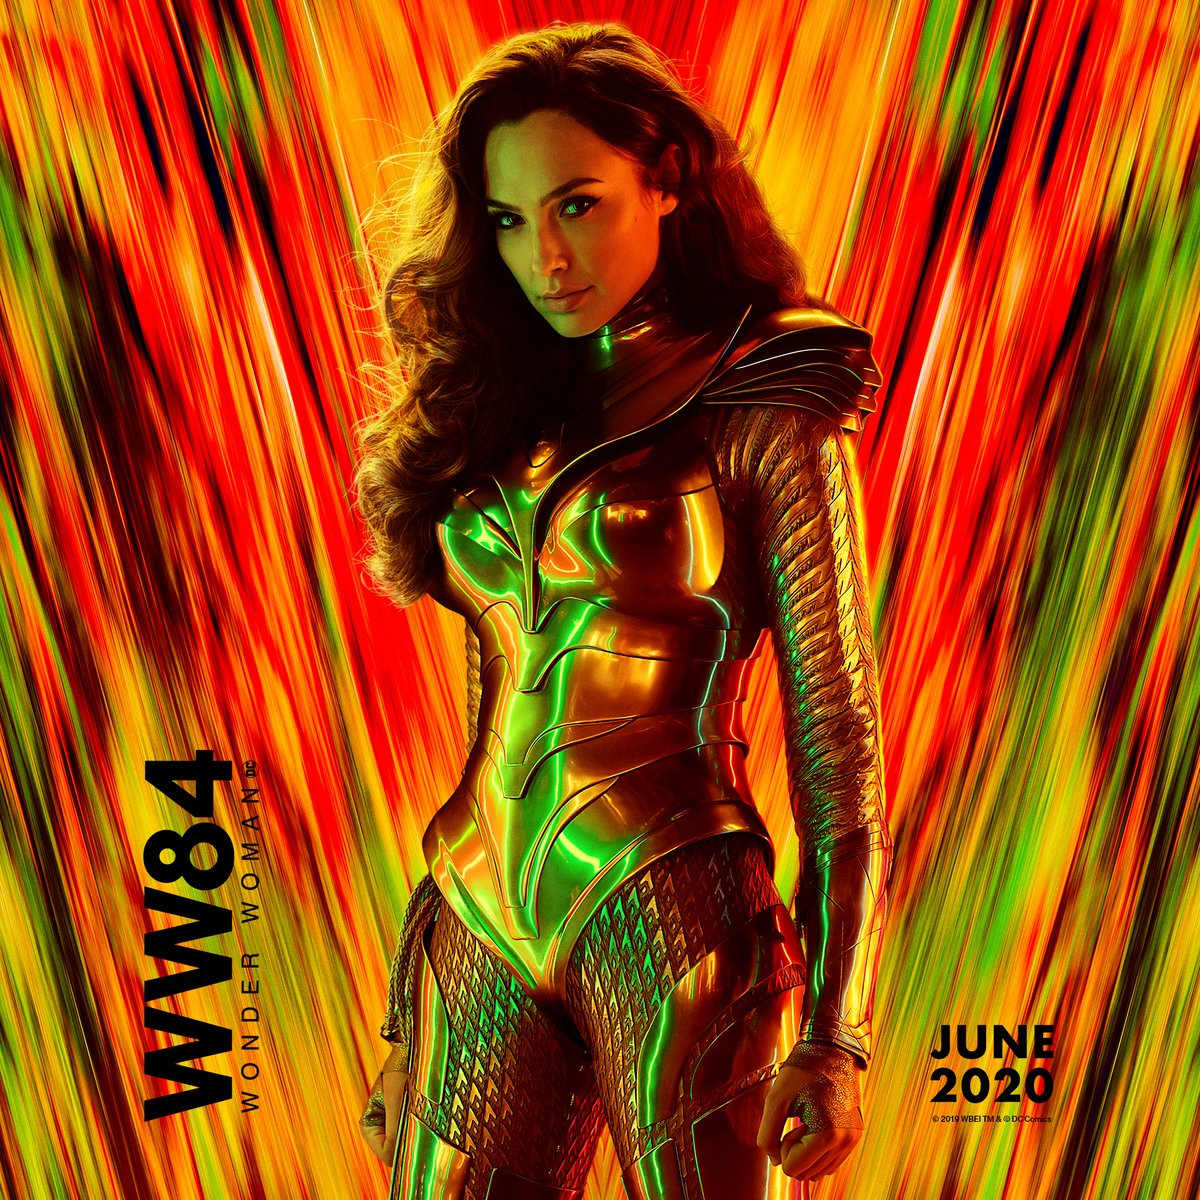 Wonder Woman 1984 Character Posters Debut